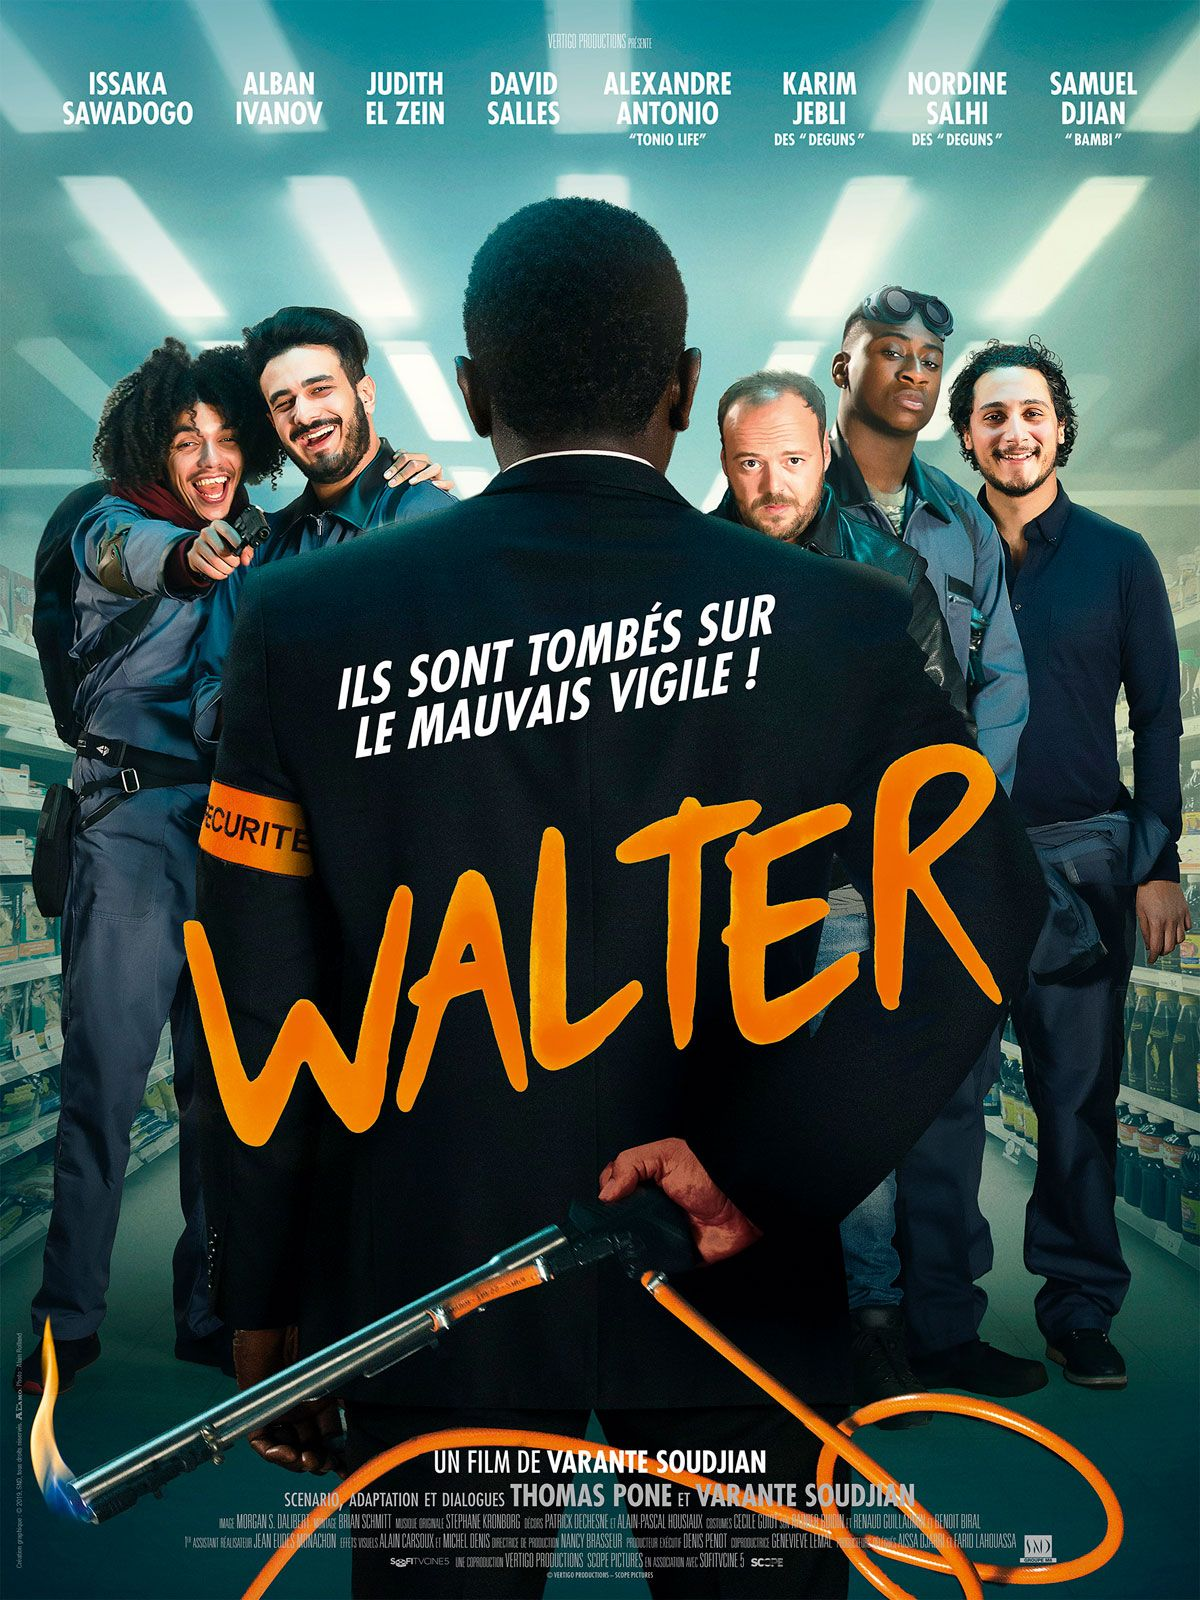 Walter Film 2019 Senscritique